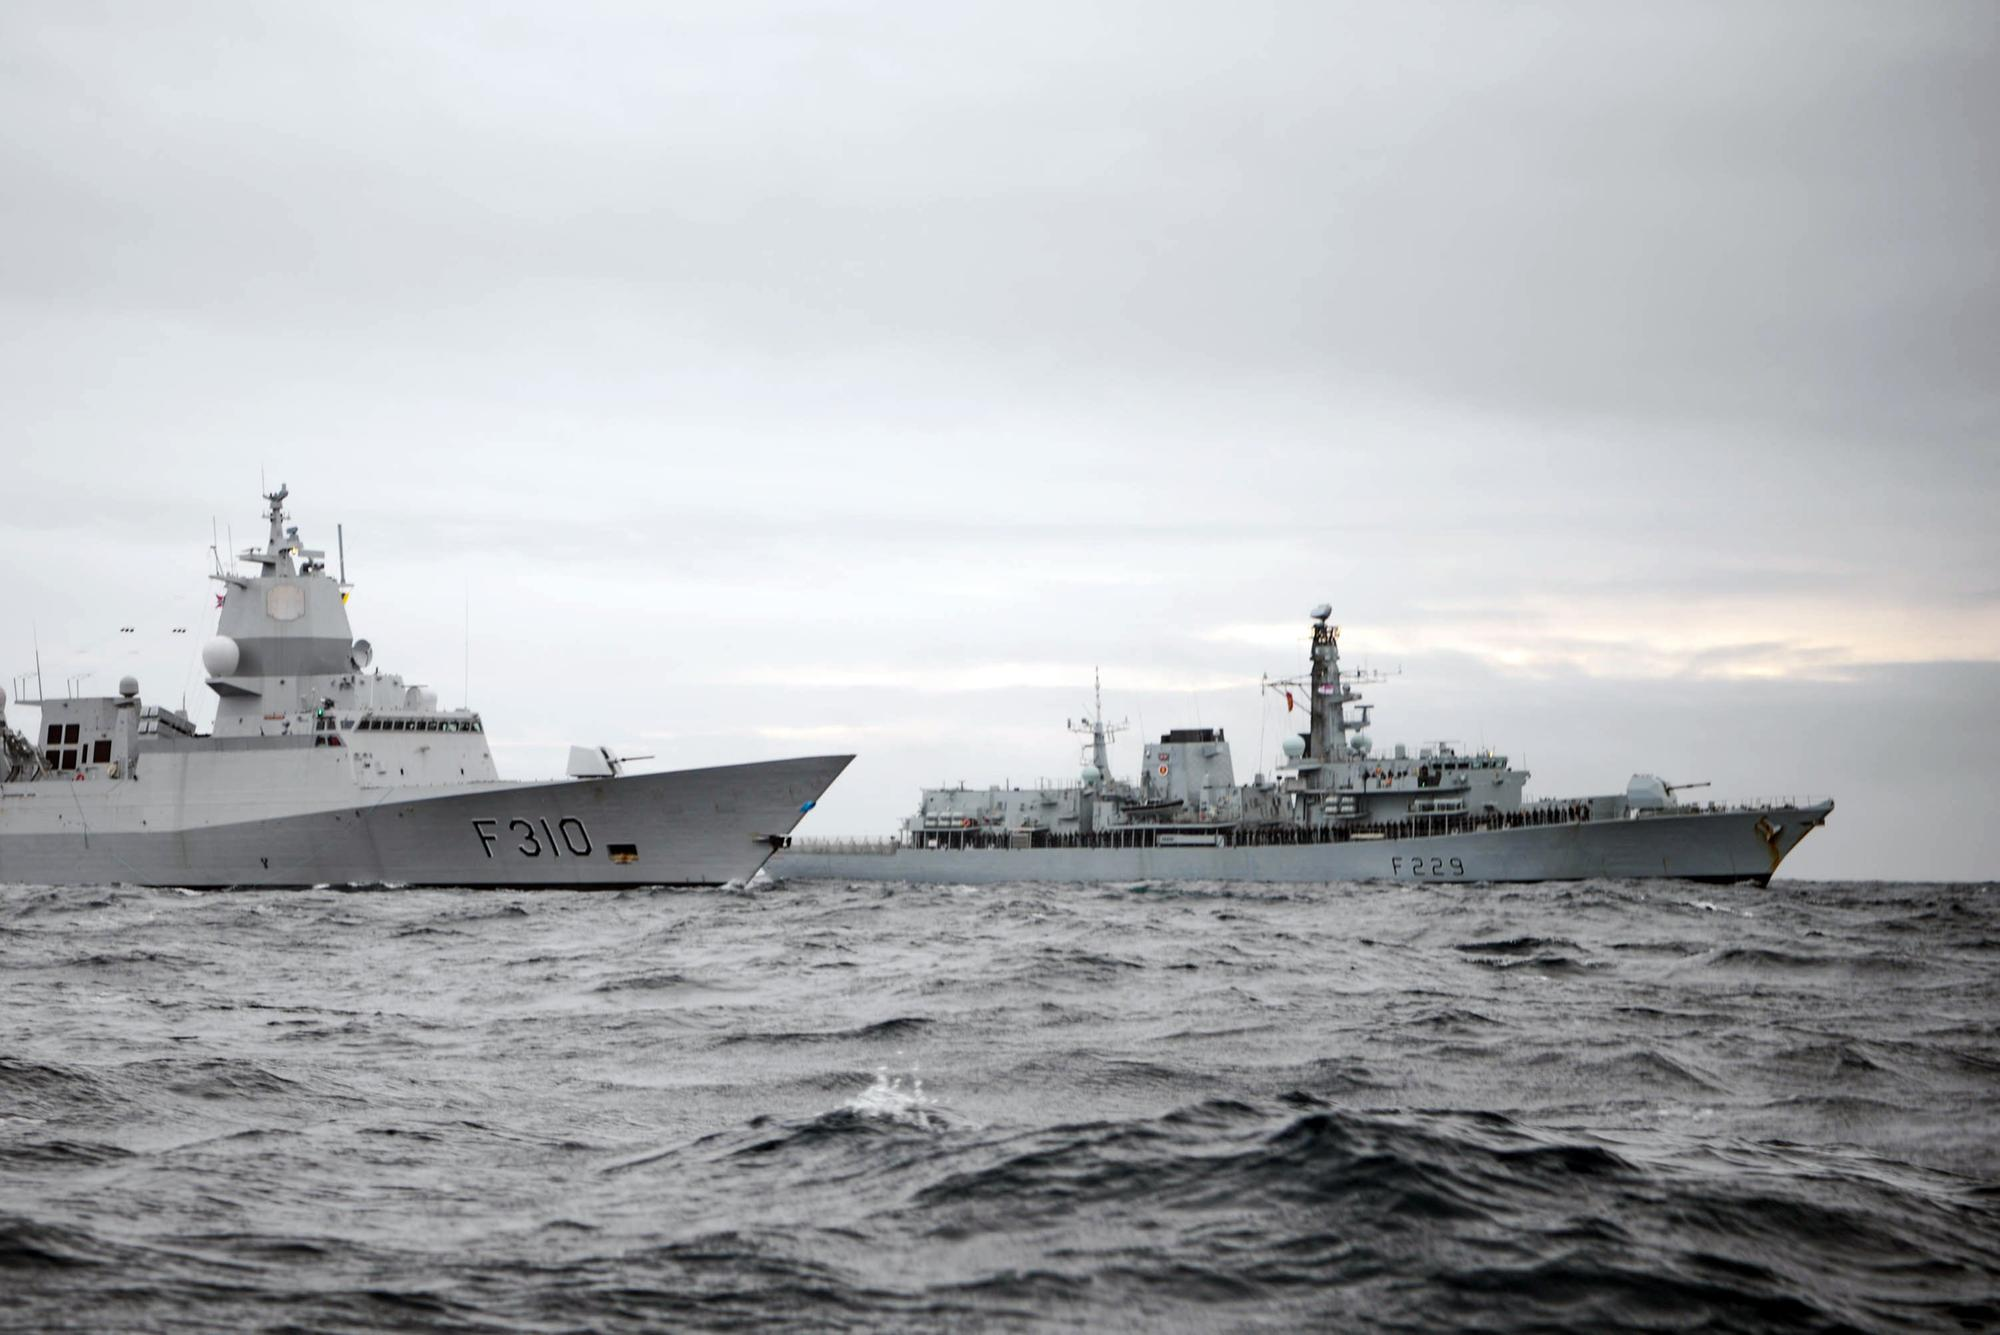 Navy deploys warship to Arctic as quest quell Russian dominance intensifies